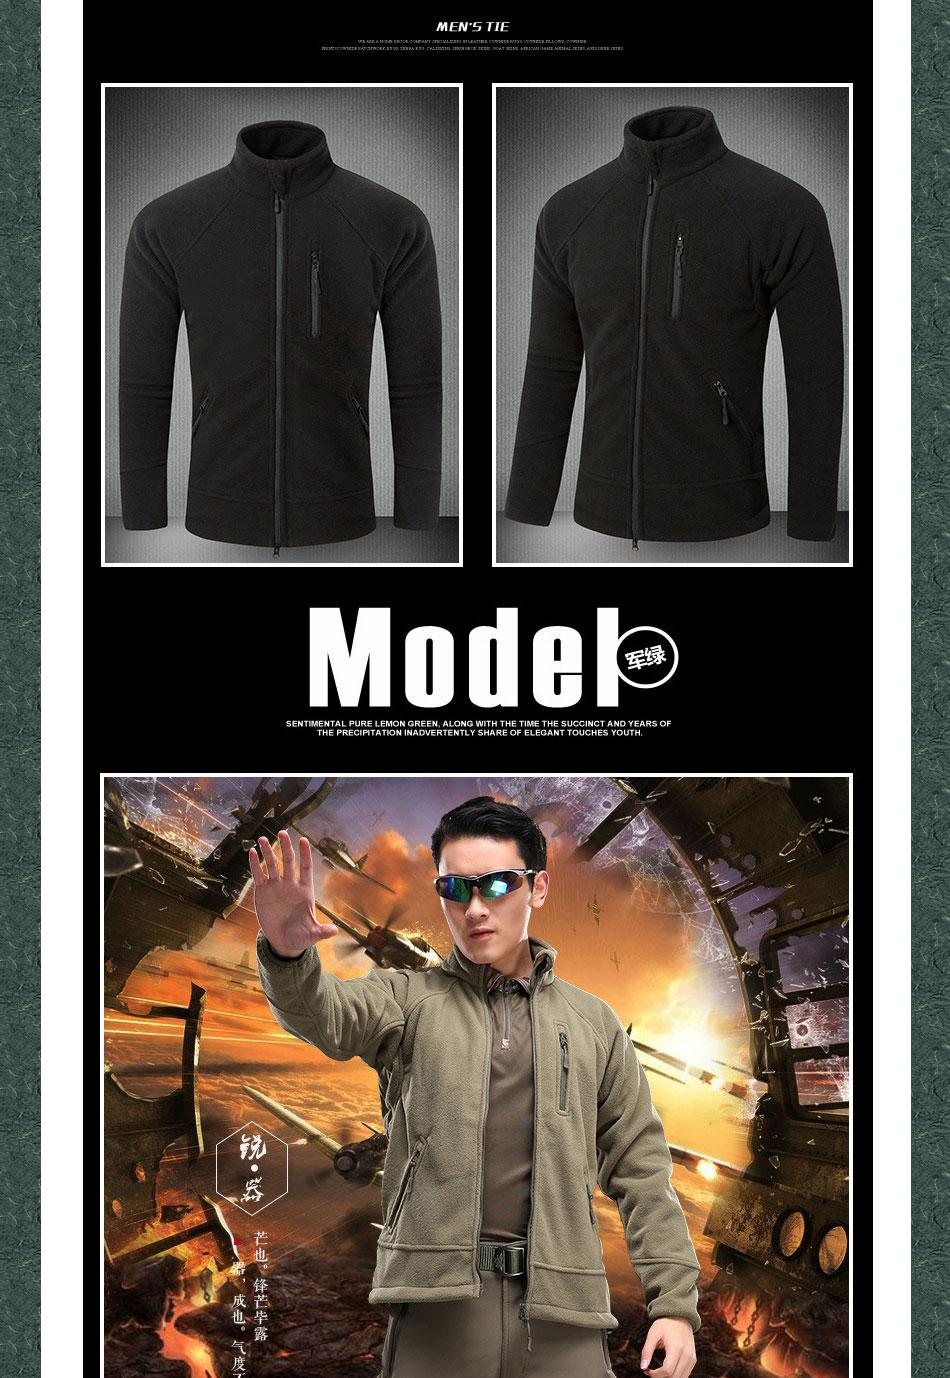 Executive Winter Tad Thick Fleece Clothing Thermal Multi Zipper Jaket Army Gear Tactical Import No Matter Which Season You Are In Spring Summer Autumn Or Will Need Mens Coat Jackets Different Situations Good Jean Jacket With Wool